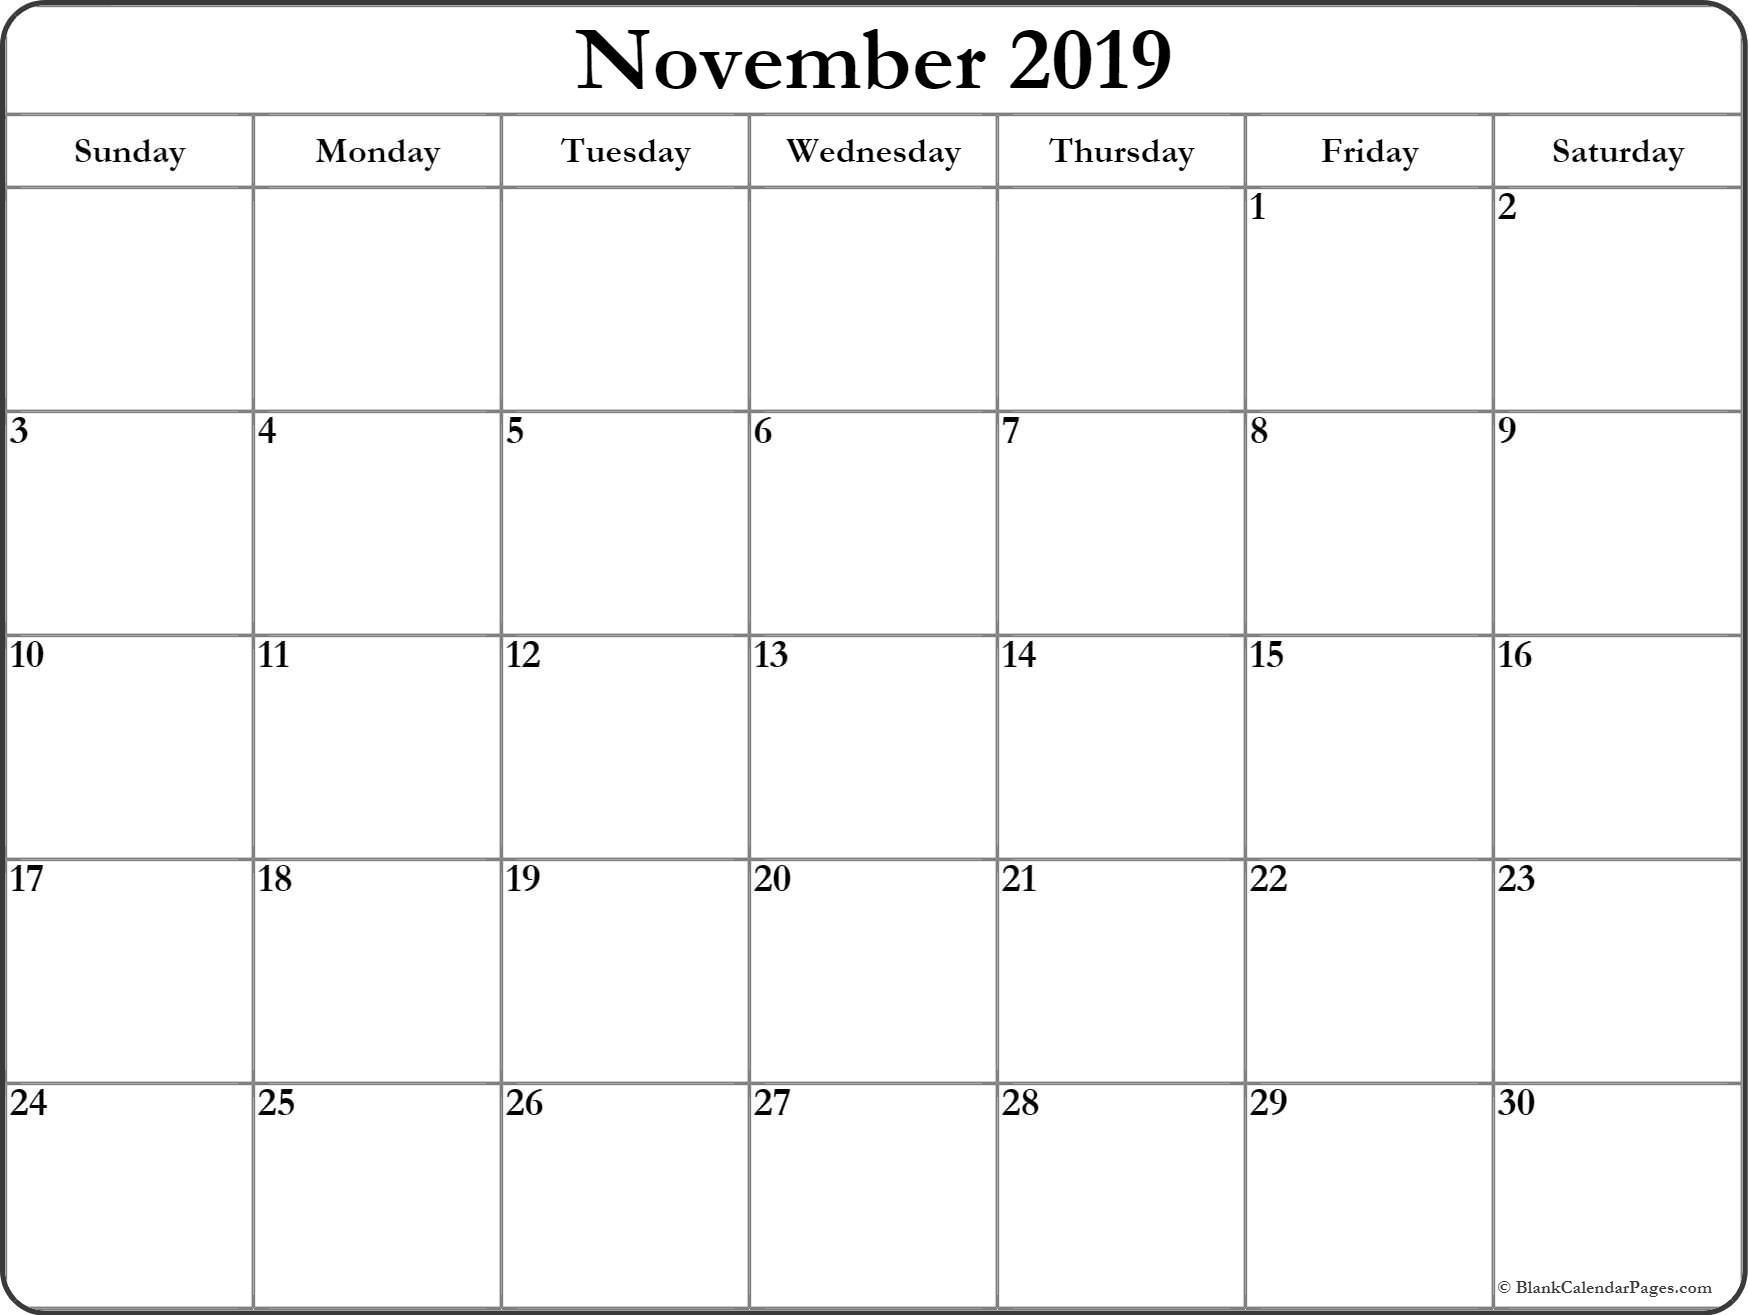 photo regarding November Printable Calendar titled Printable November 2019 Calendar PDF Cost-free Month to month Template